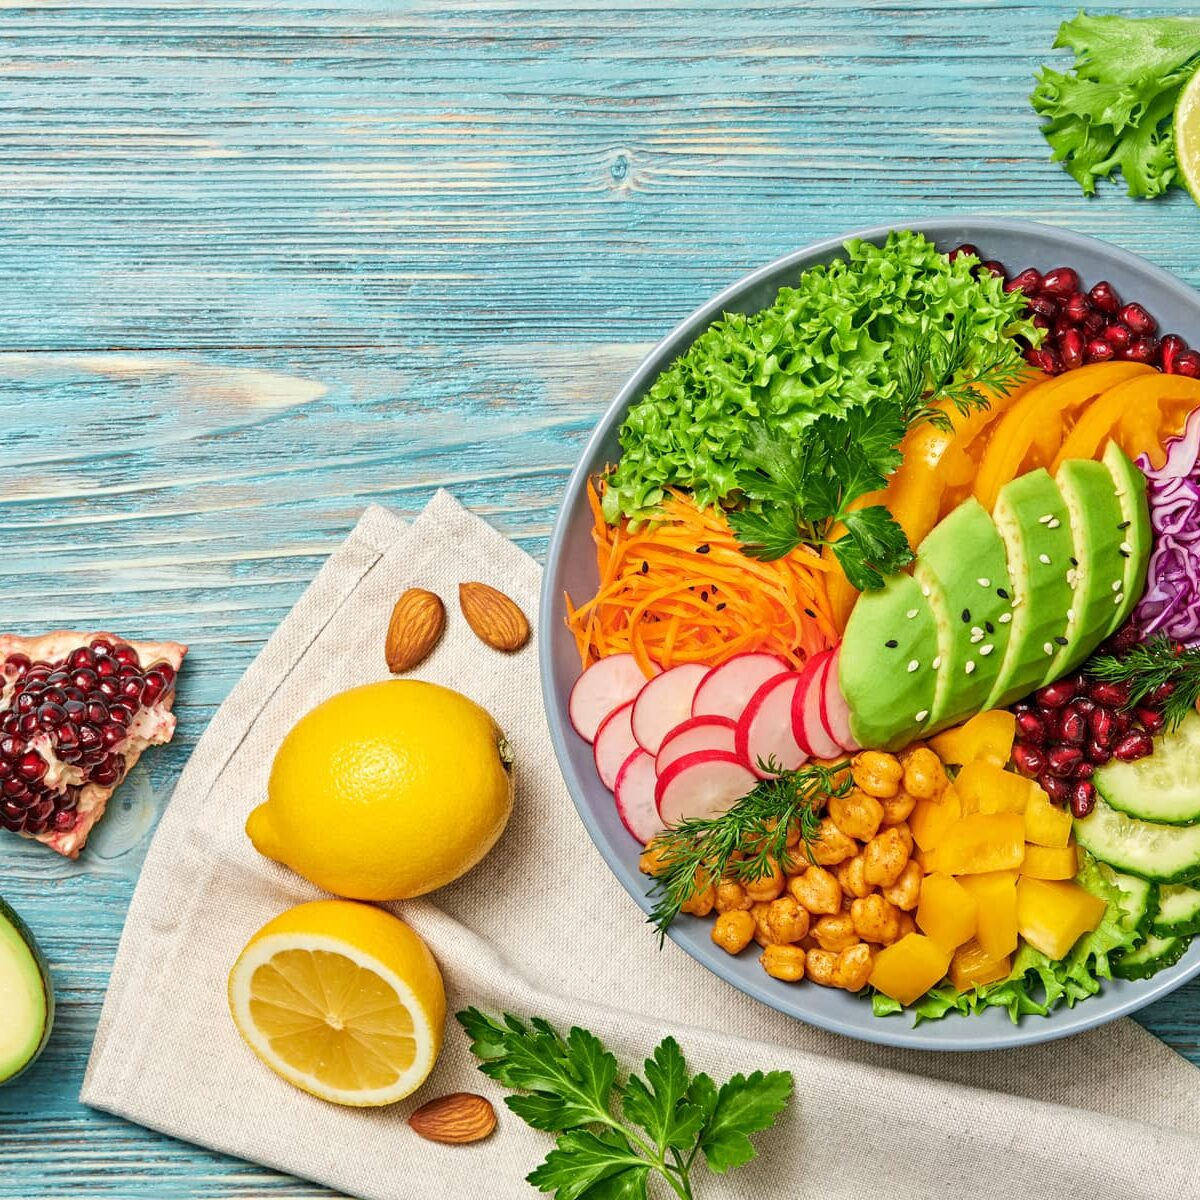 Buddha bowl salad with avocado, tomato, lettuce, cucumber, red cabbage, chickpeas, pomegranate. Paleo diet, healthy vegan and balanced food concept. Fresh rainbow mix green salad on blue wood